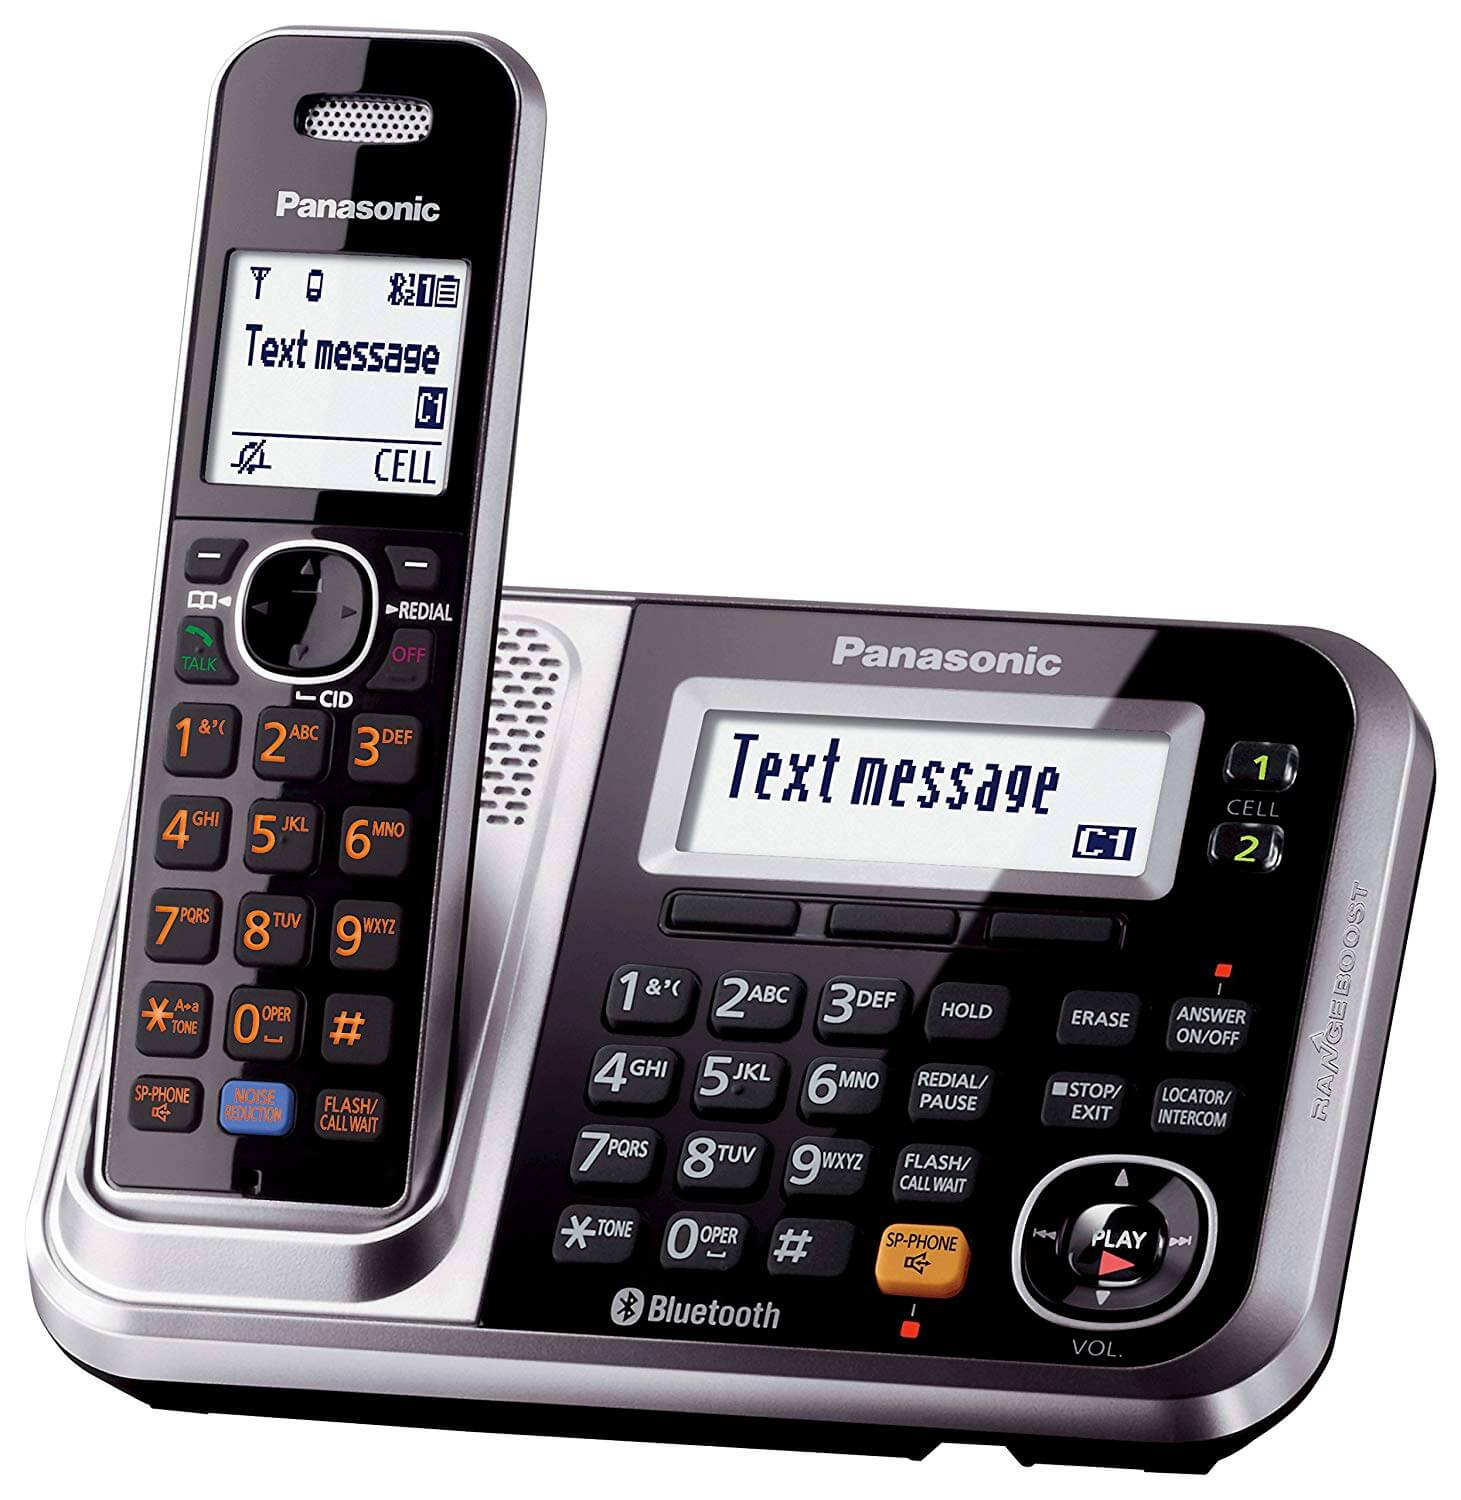 Panasonic Bluetooth Cordless Phone KX-TG7875S Link2Cell with Enhanced Noise Reduction & Digital Answering Machine